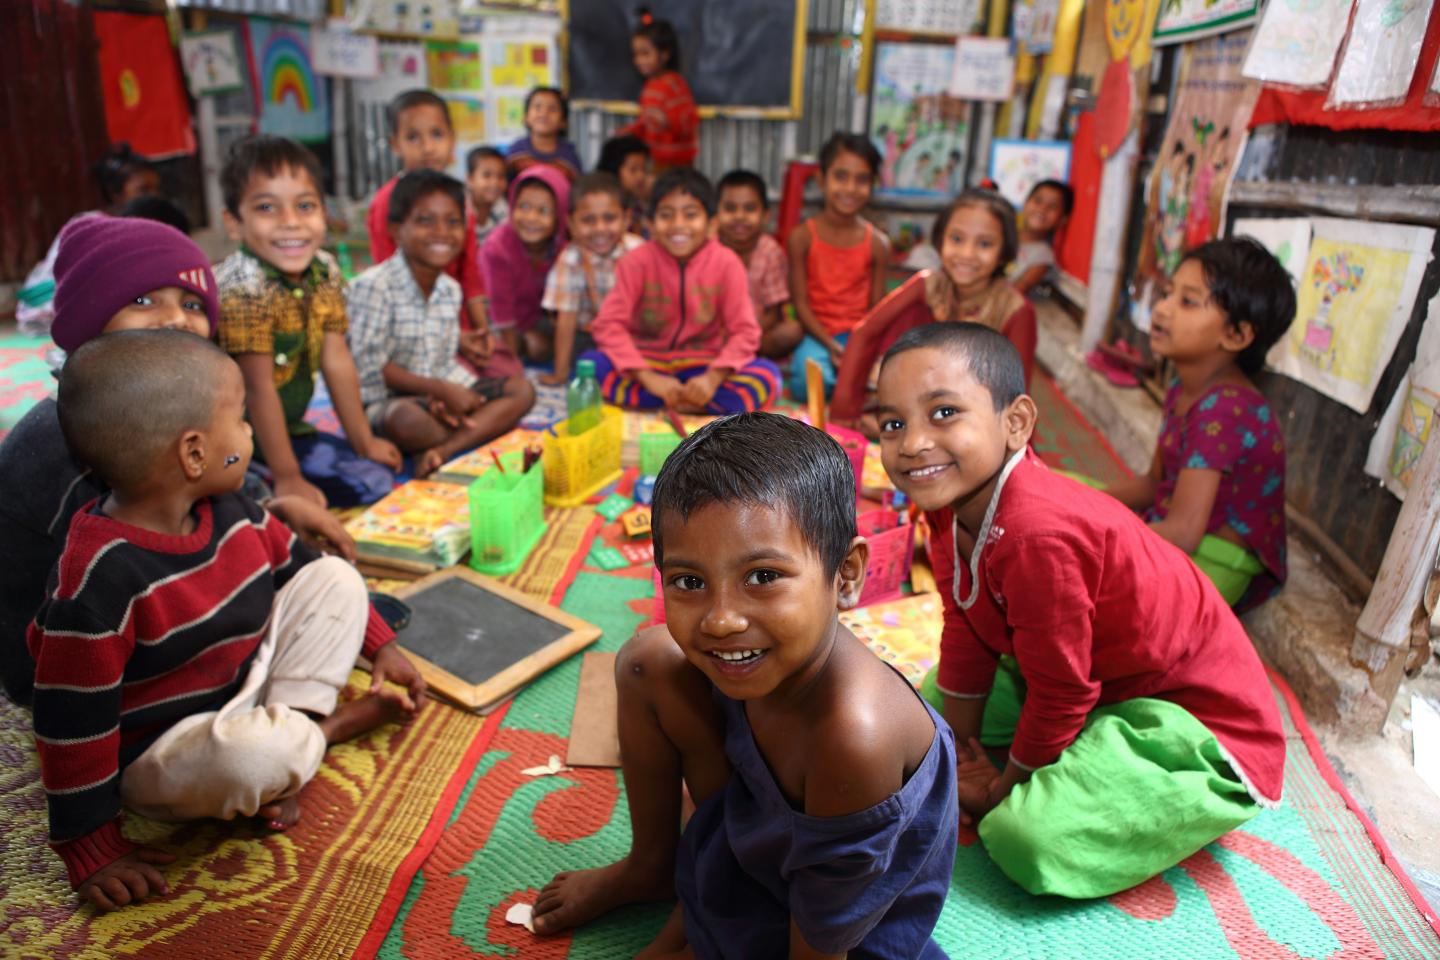 Children attend pre-school with fun and joy in Dhaka.